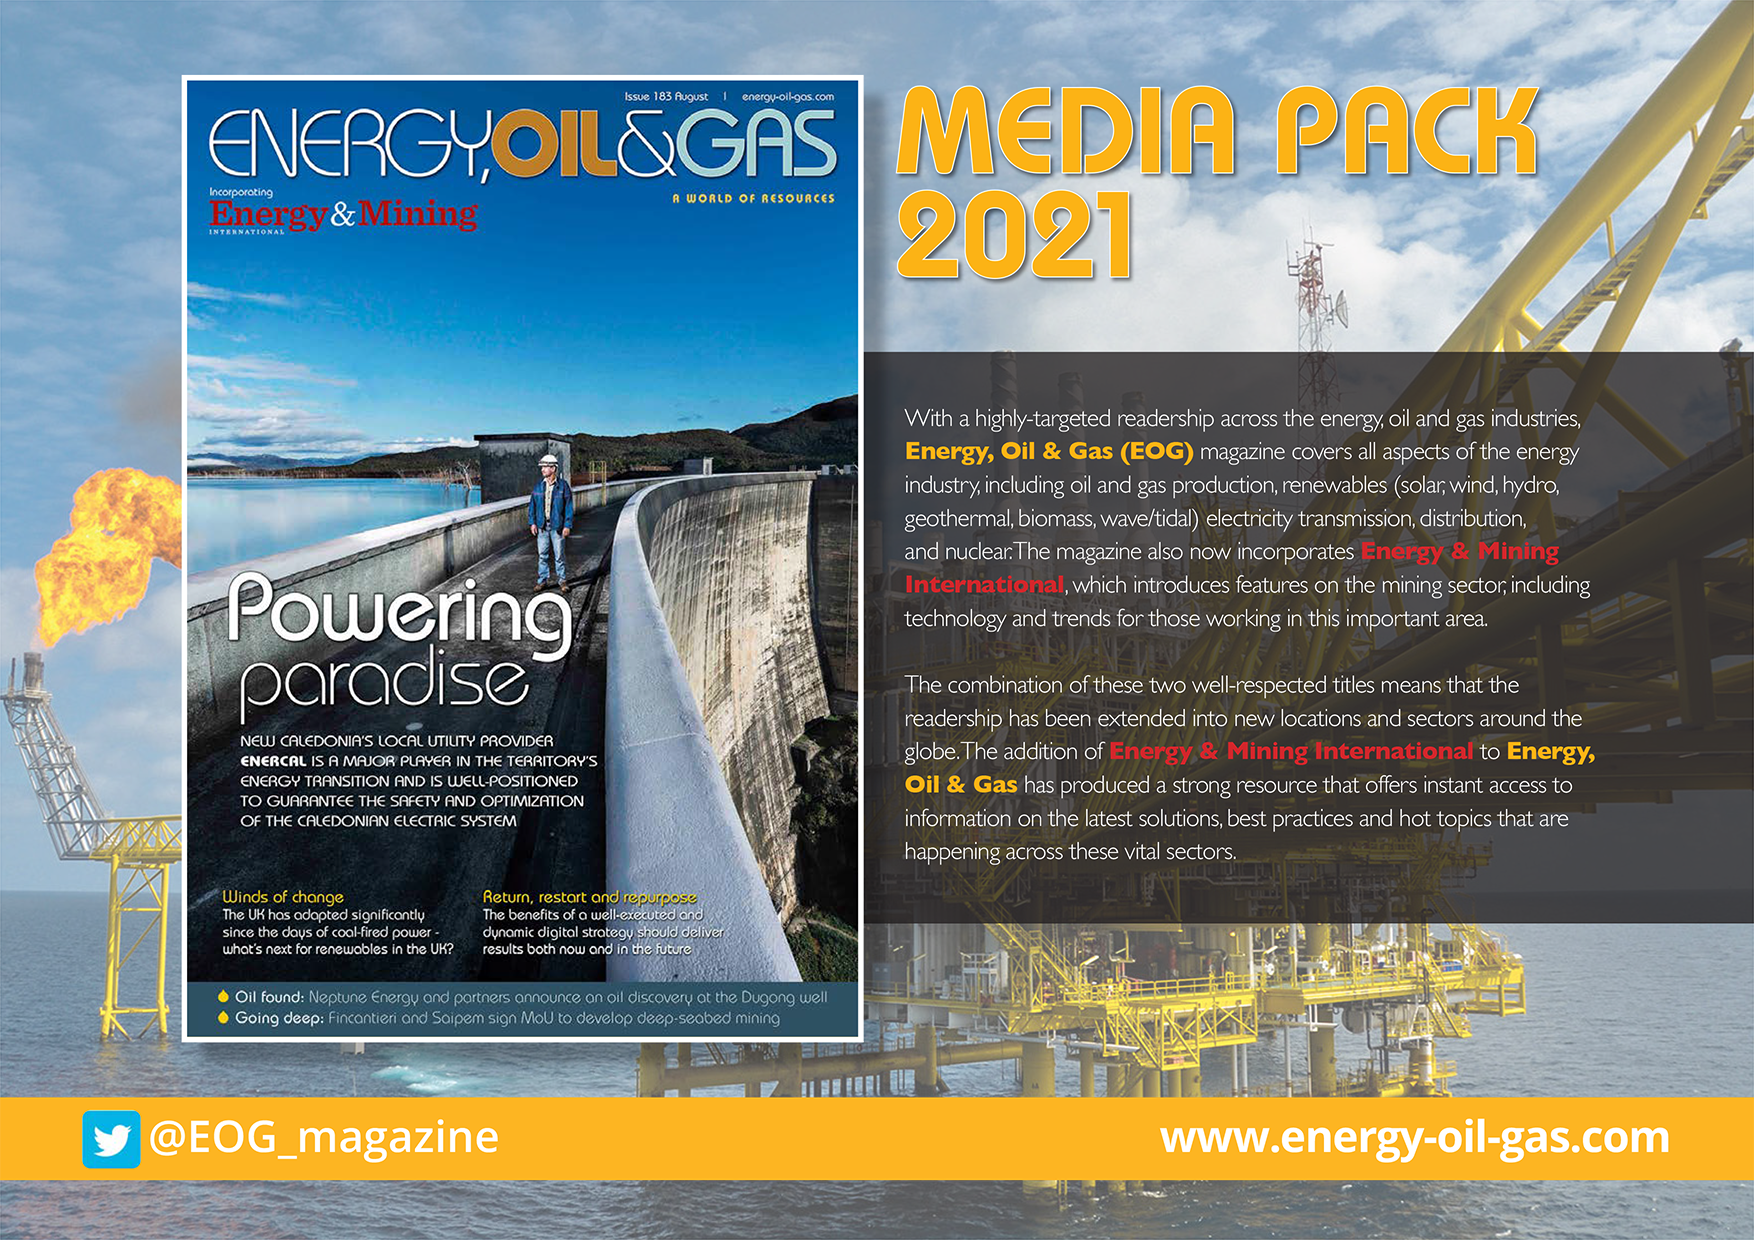 EOG Media pack 2021 - Front cover